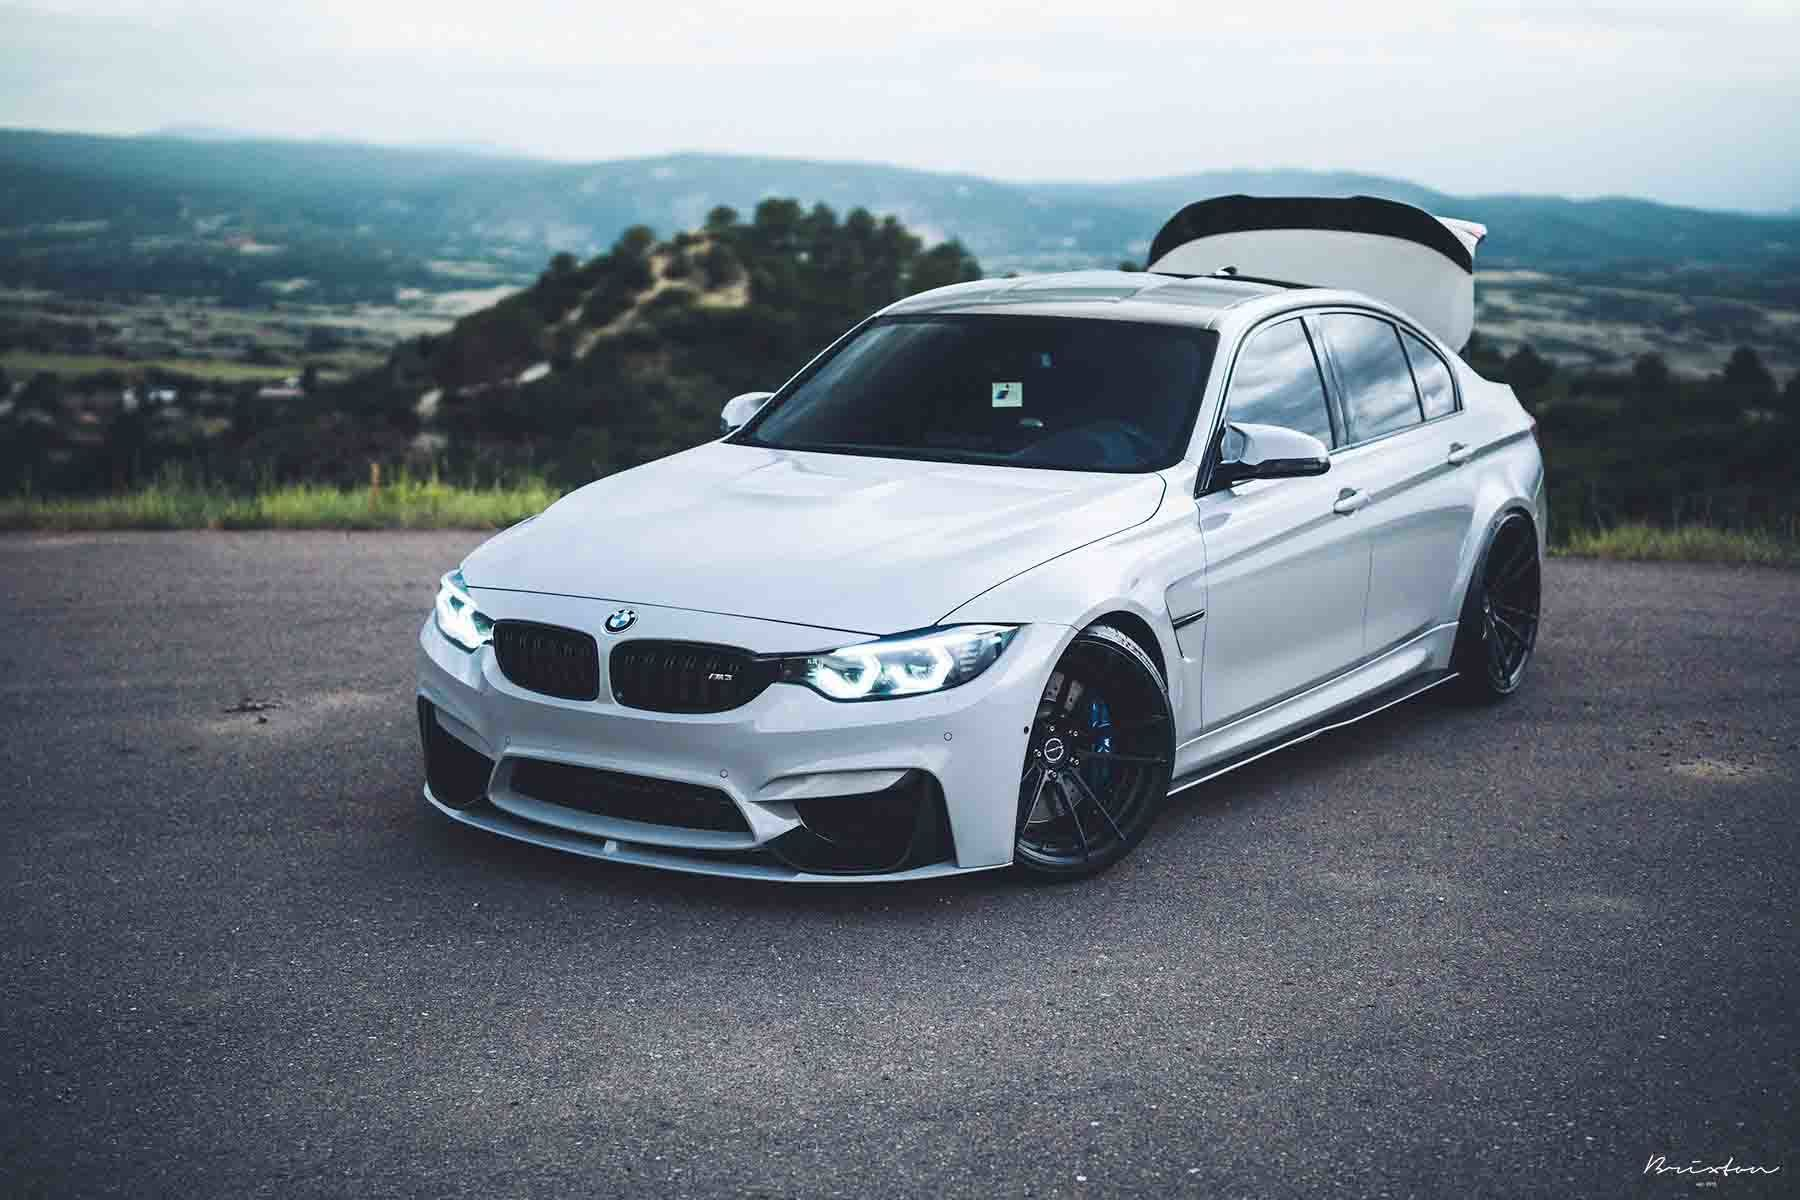 images-products-1-2176-232974464-bmw-f80-m3-brixton-forged-m51-02-1800x1200.jpg